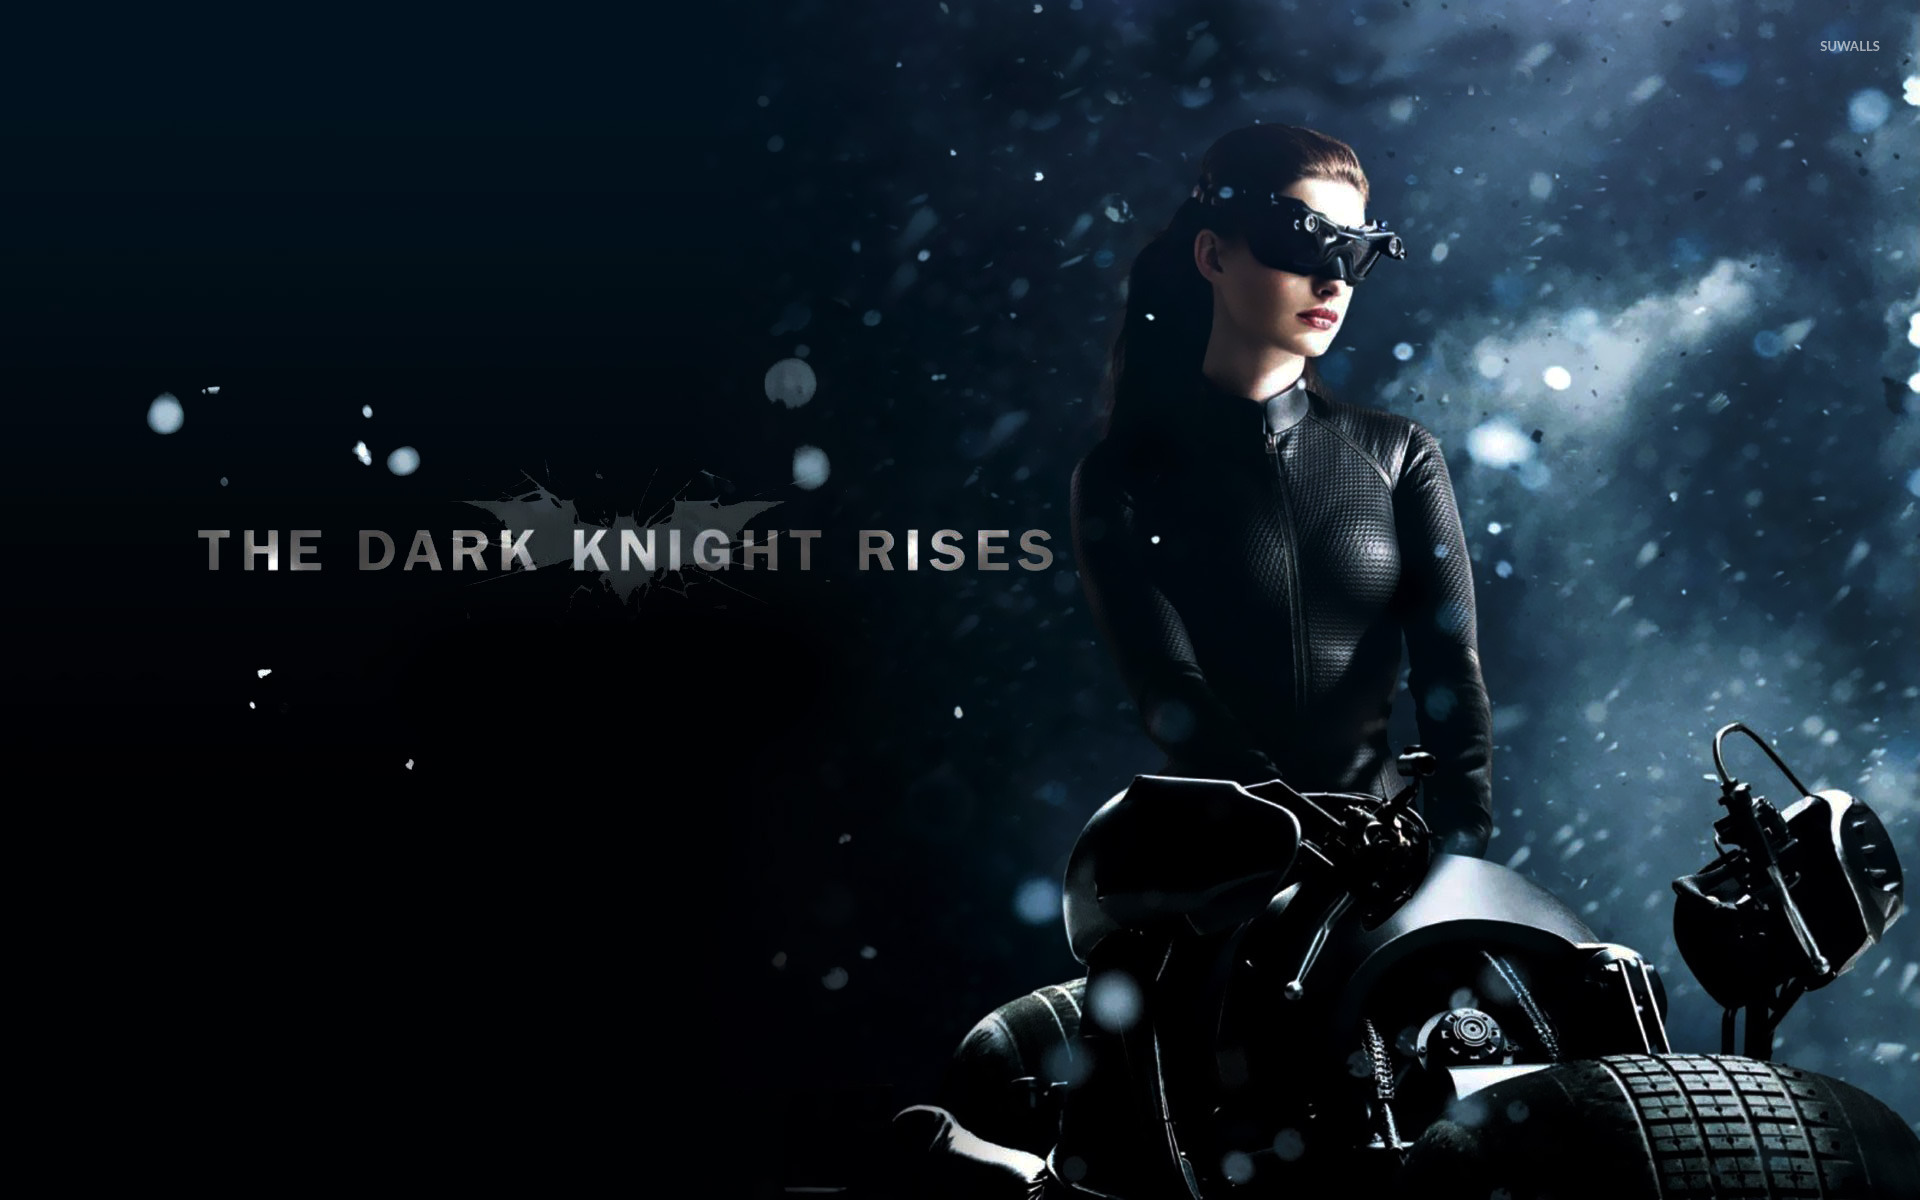 Catwoman The Dark Knight Rises Wallpaper Movie Wallpapers 13003